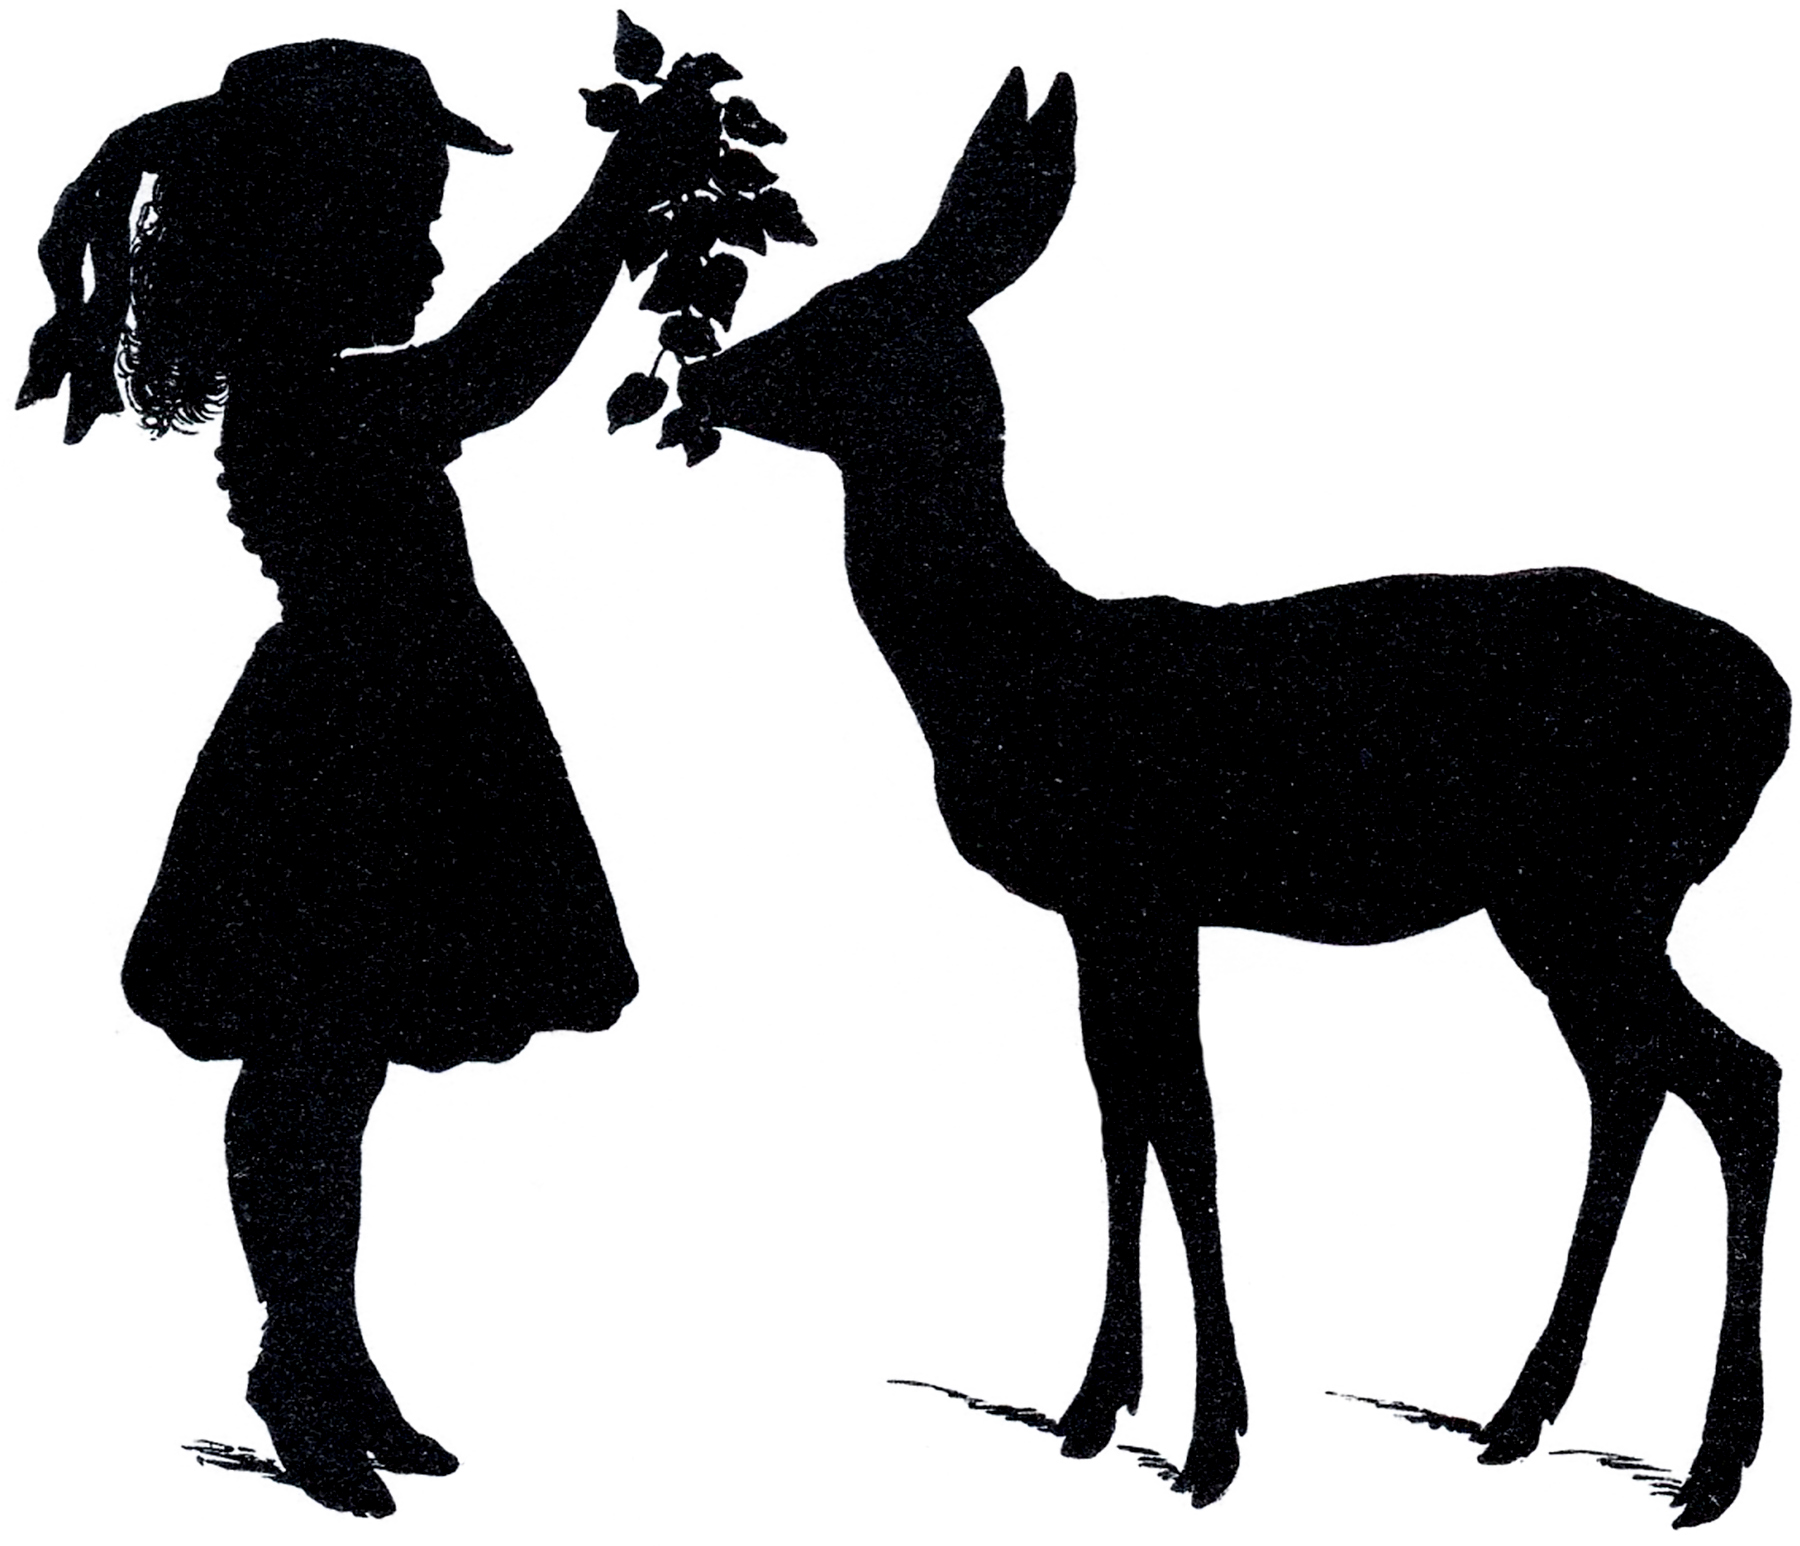 Directors clipart images amp pictures becuo - 52 Best Ashlie Silhouette Project 2 Images On Pinterest Silhouette Projects Google Images And Silhouette Photography